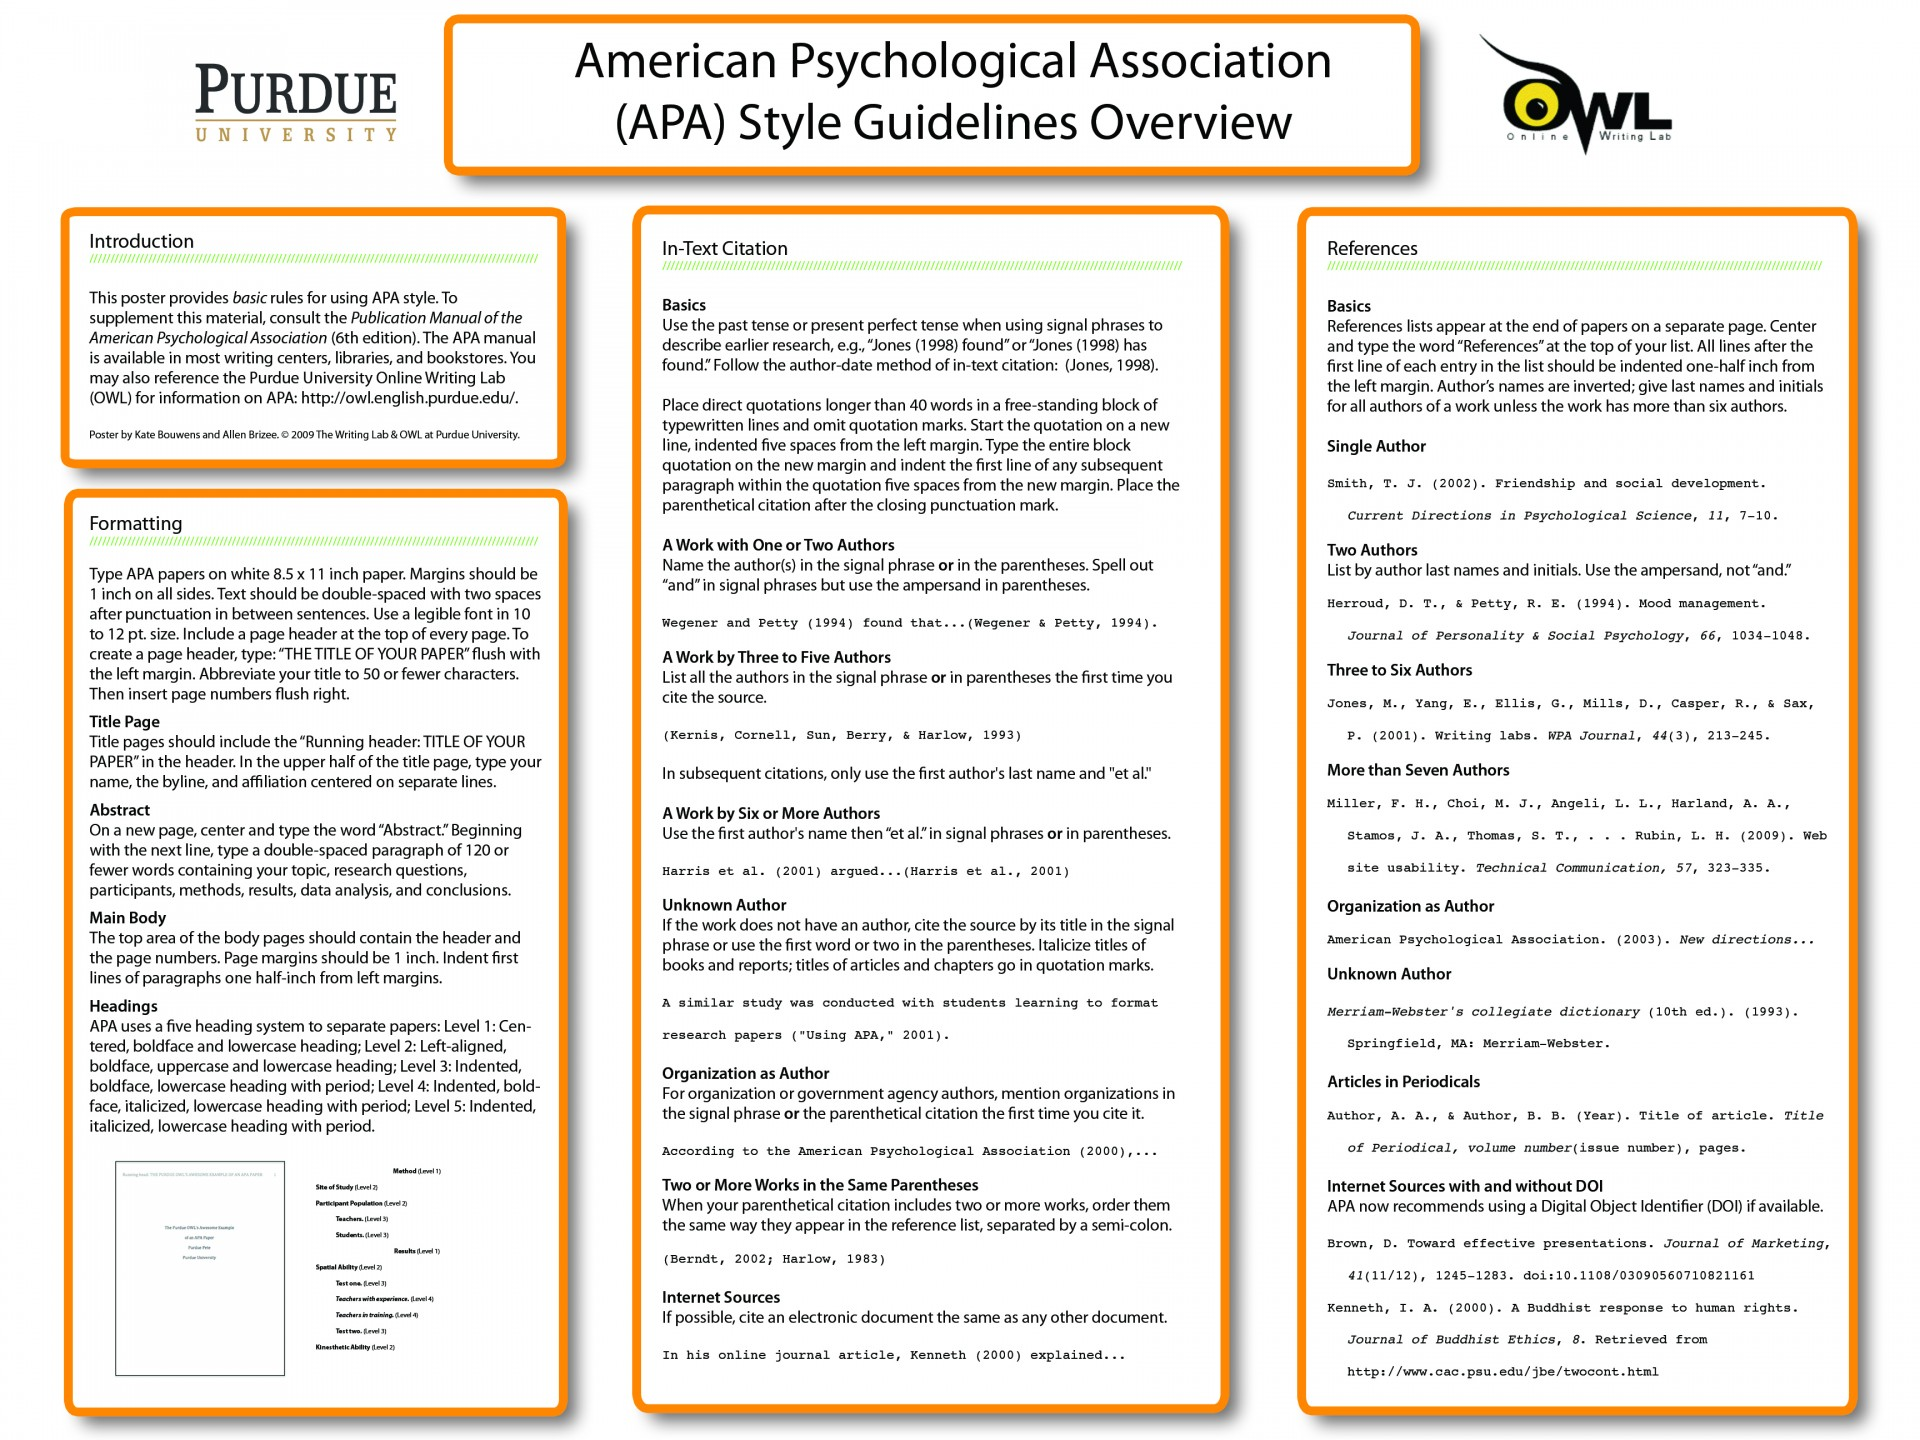 012 Research Paper How To Cite An Apa Shocking Article In A Online 1920